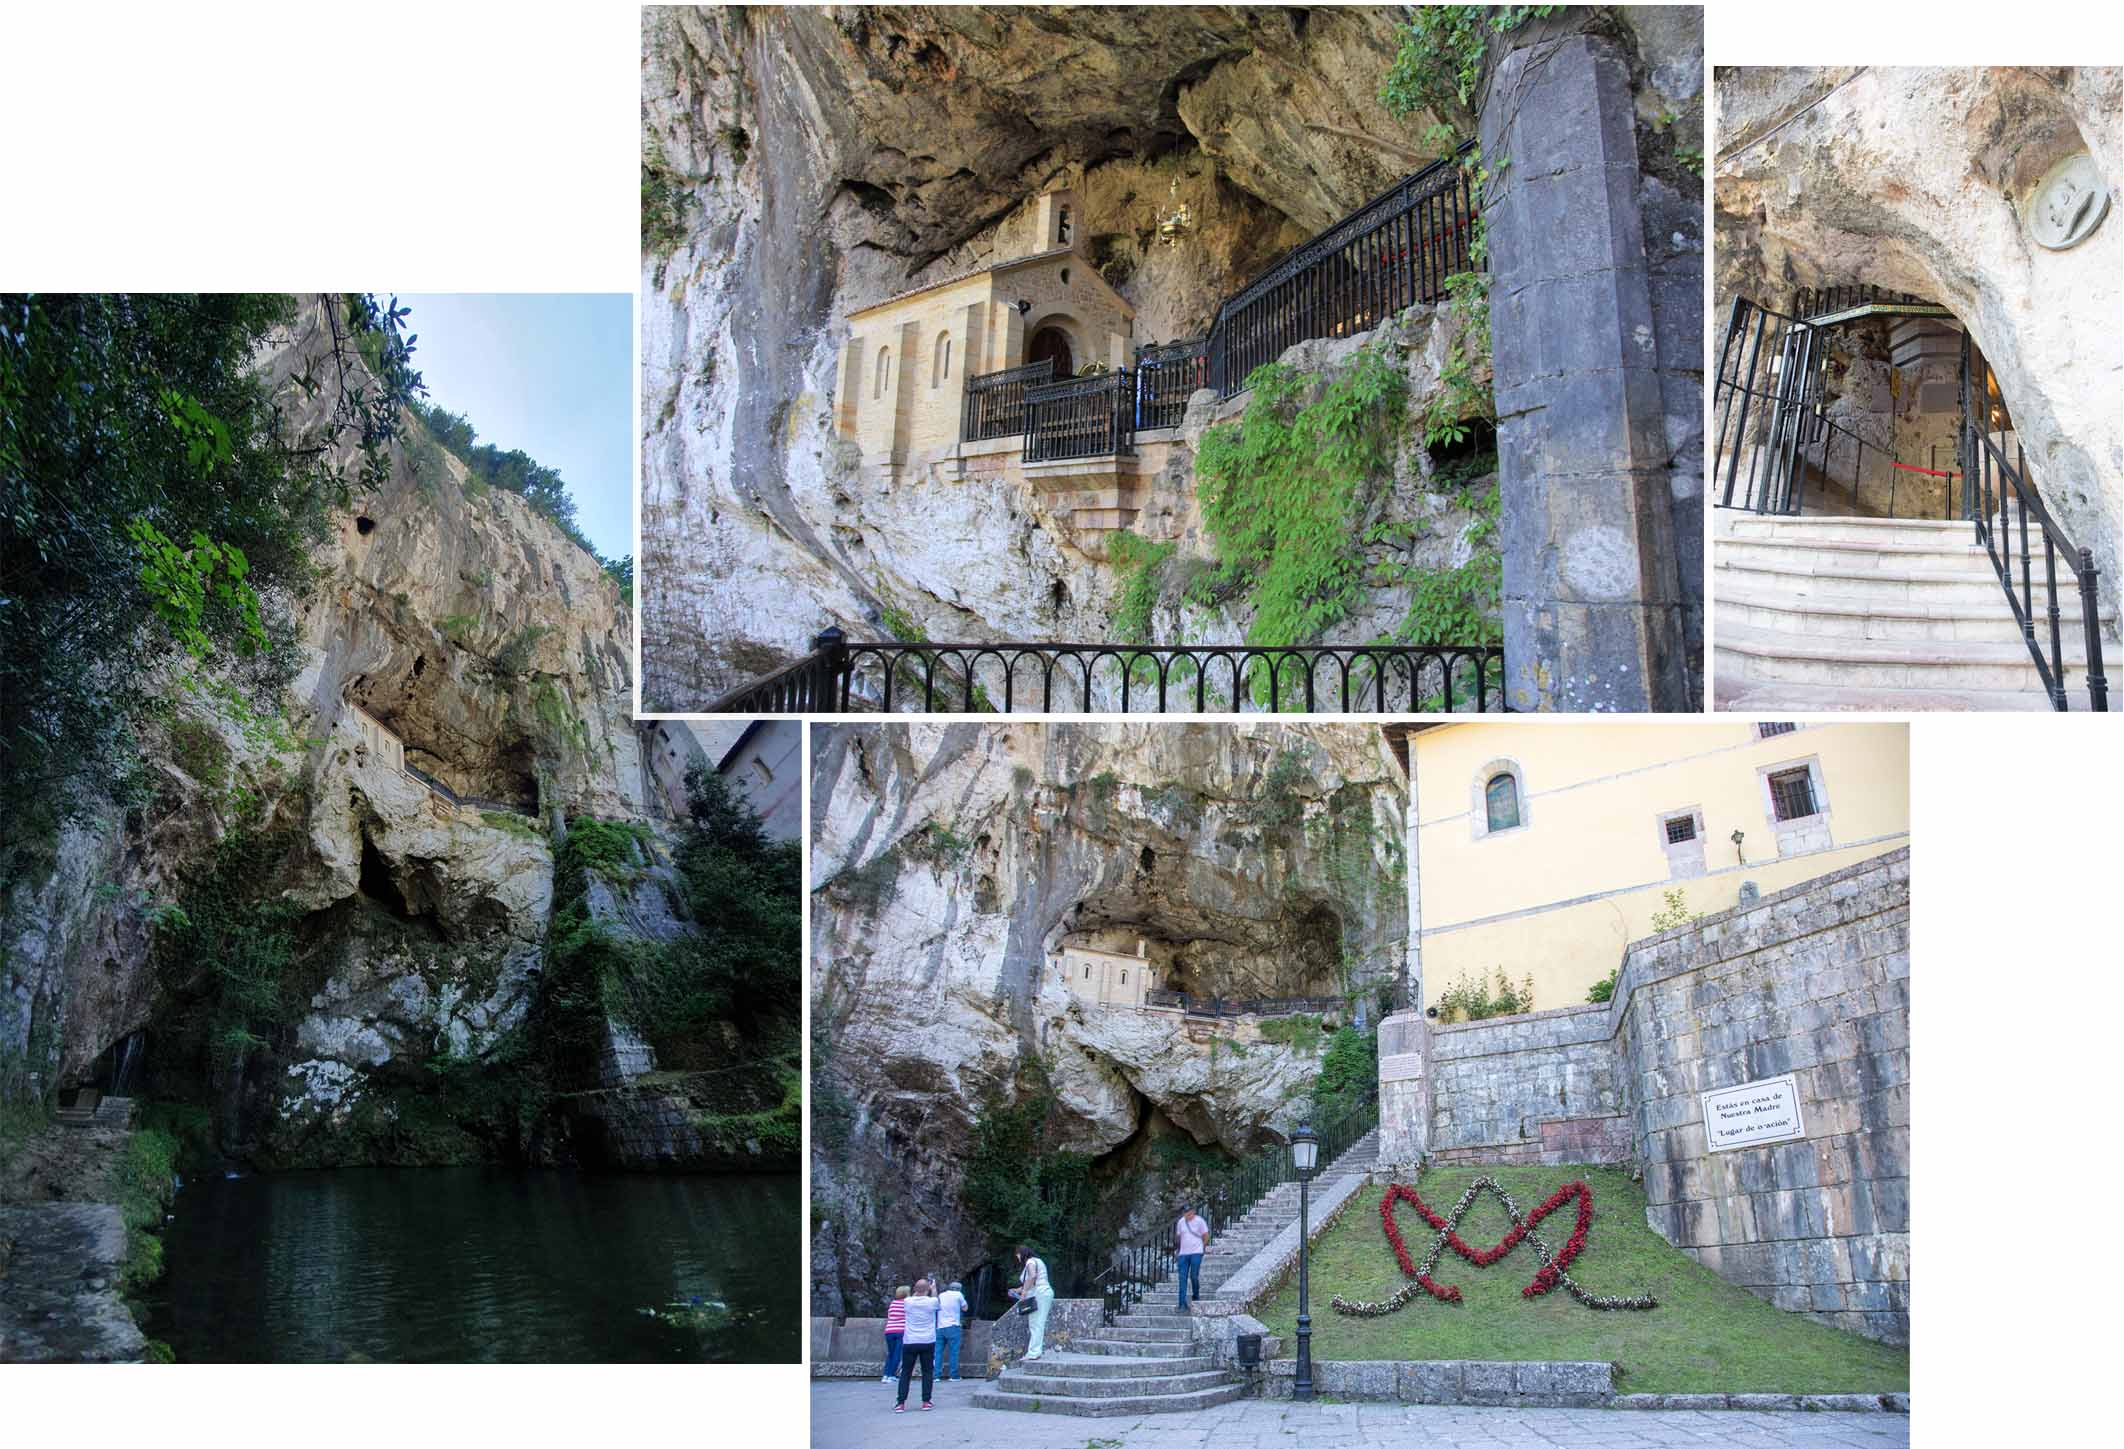 The Holy Cave of Covadonga